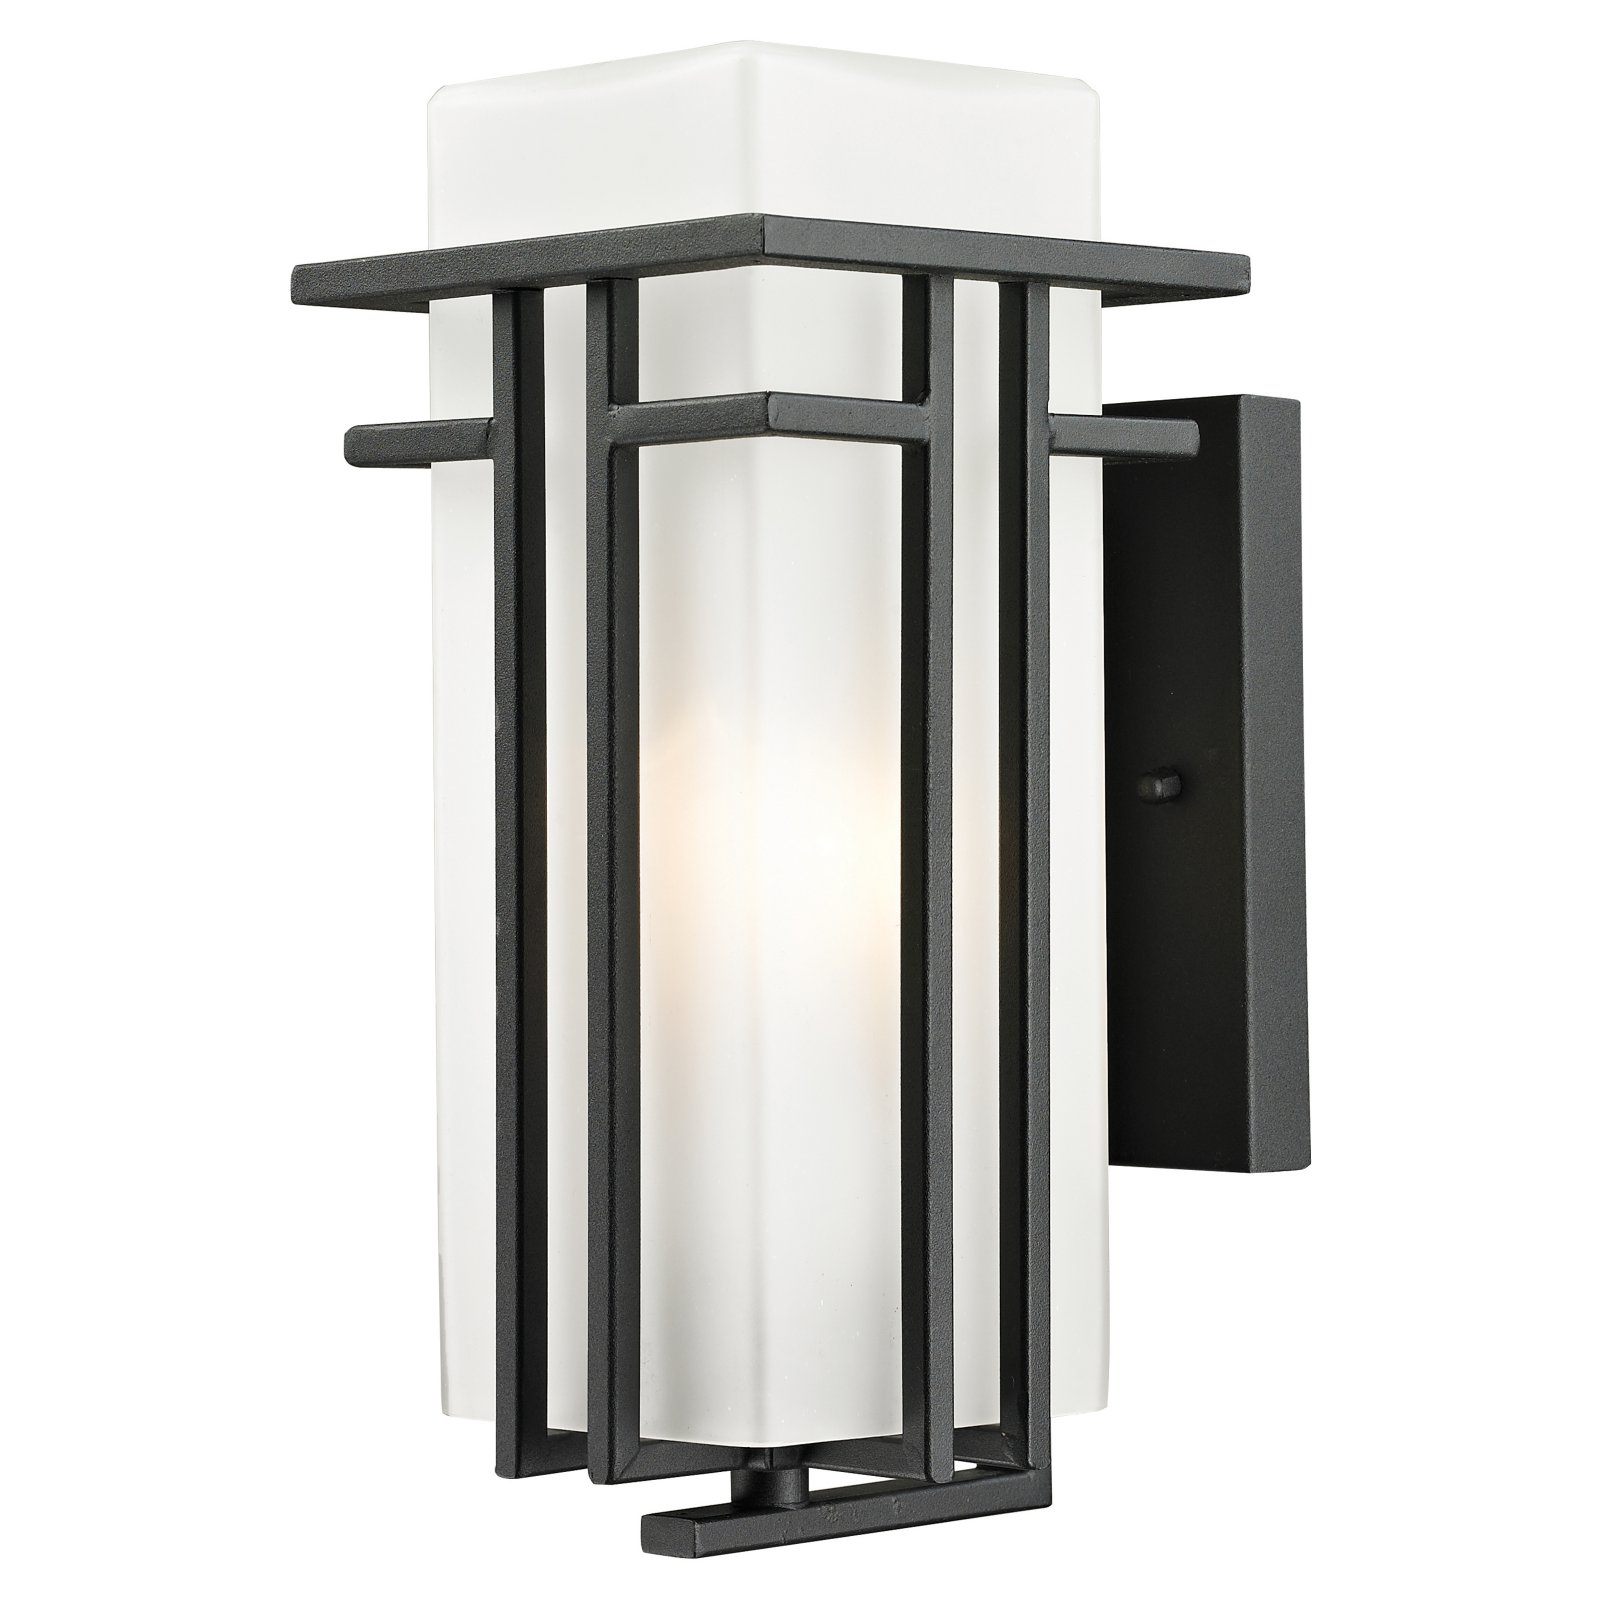 Z-Lite 549S Abbey 1-Light Outdoor Wall Sconce with Matte Opal Shade